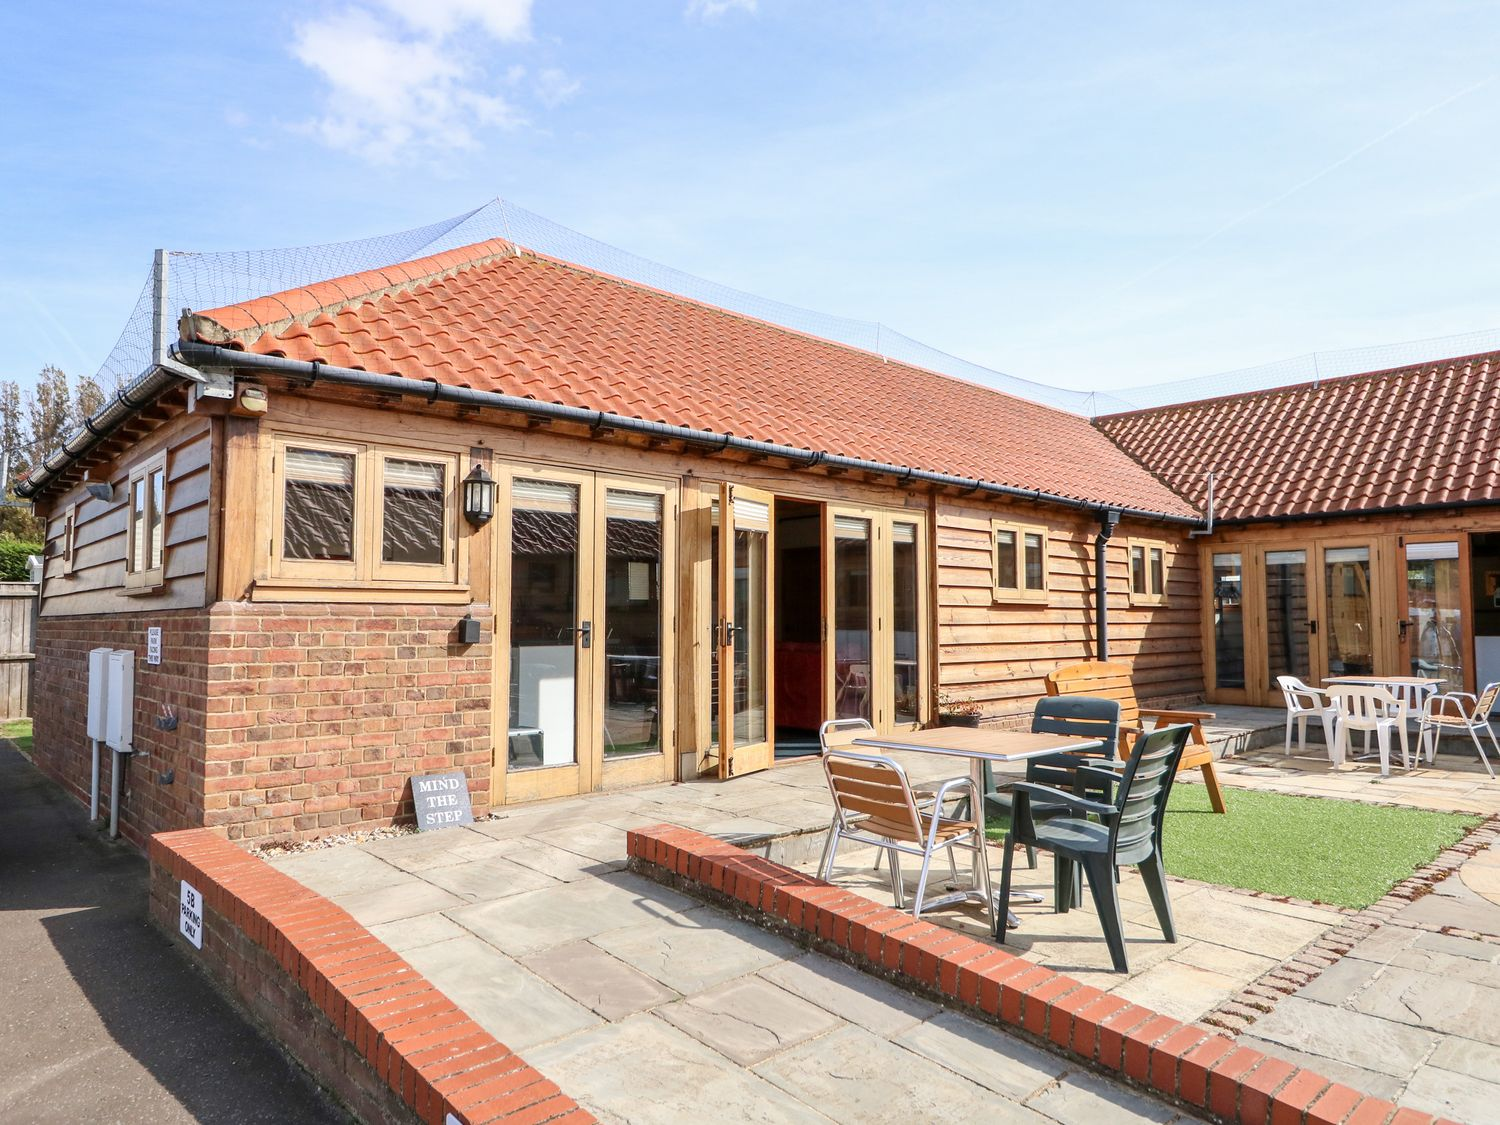 Hideways Self Catering Cottage in Hunstanton, Norfolk